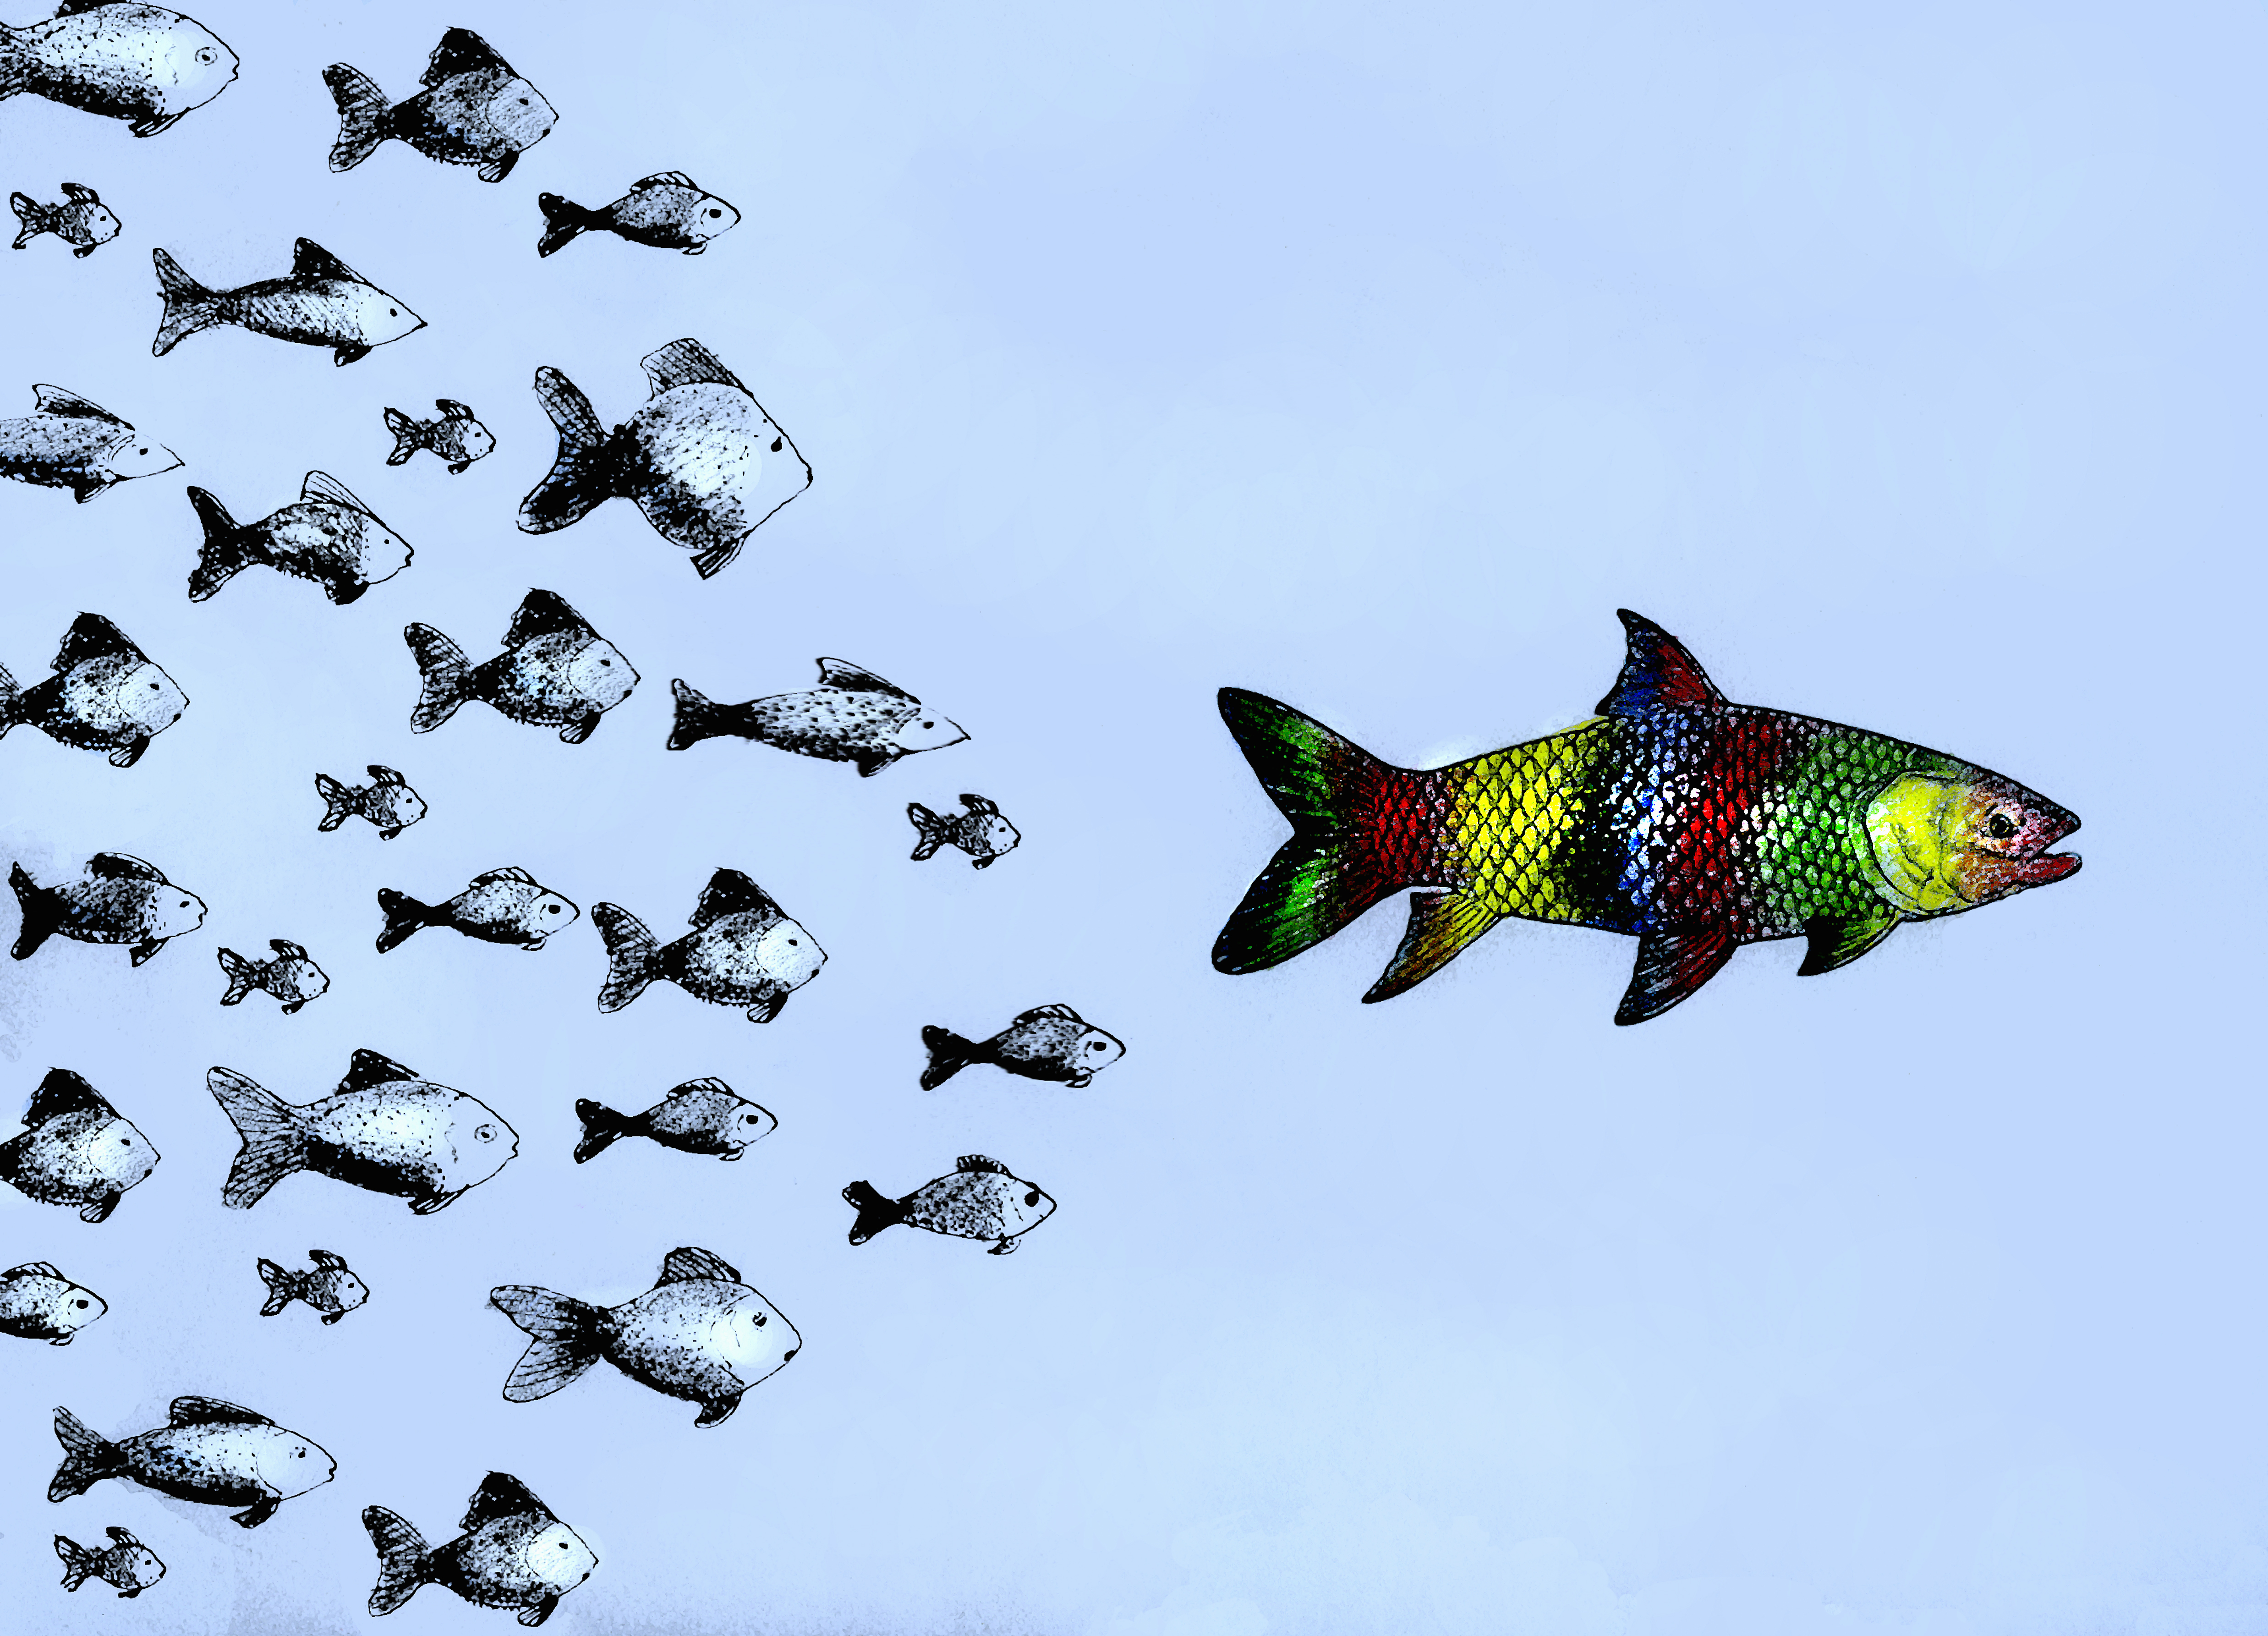 Small fish following large multicolored fish